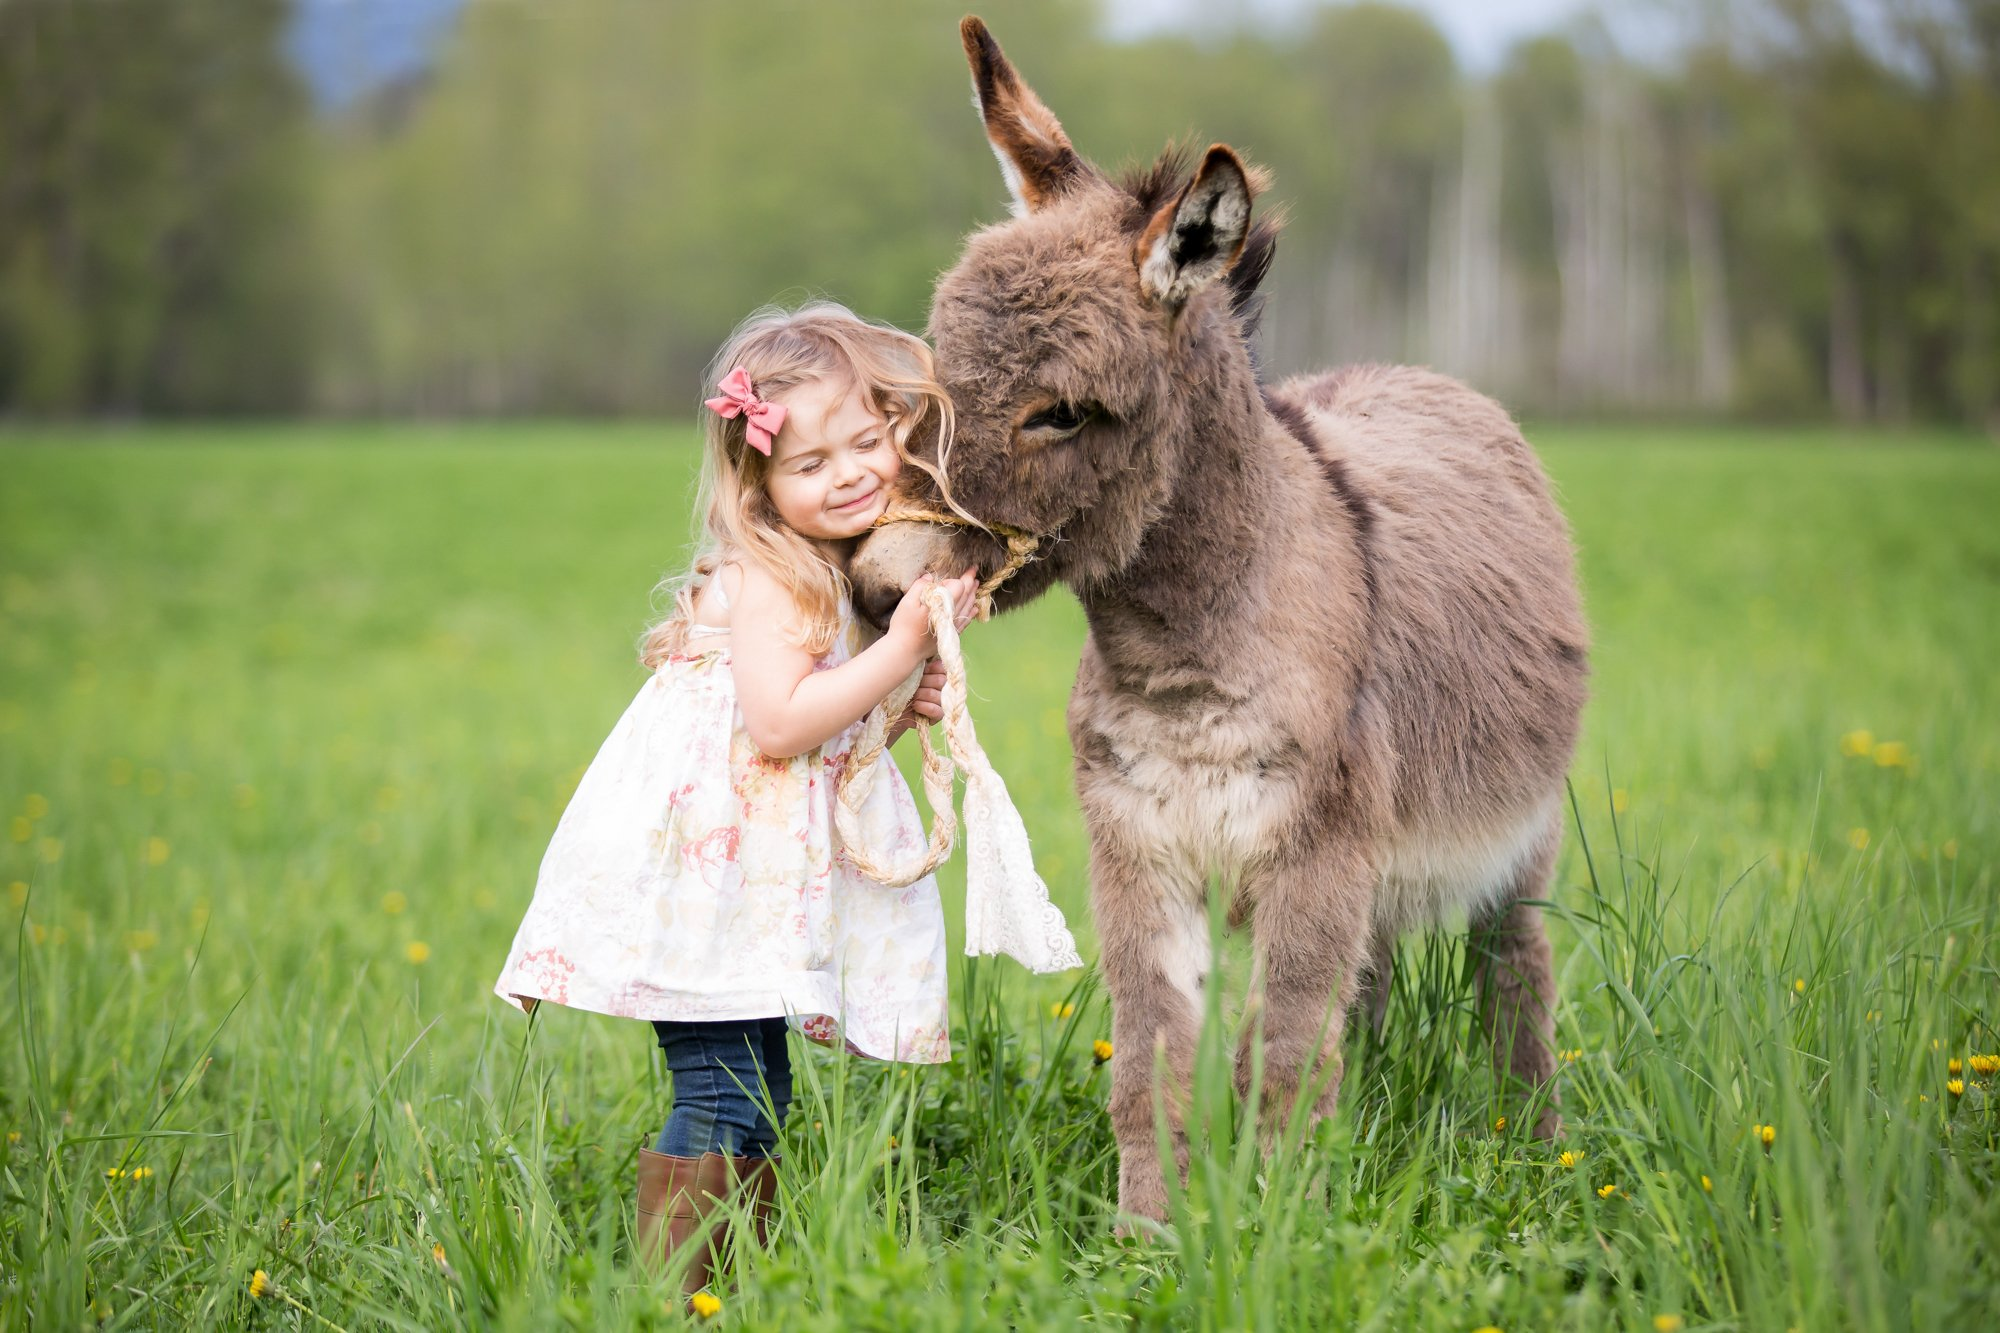 A little girl snuggling with a mini donkey